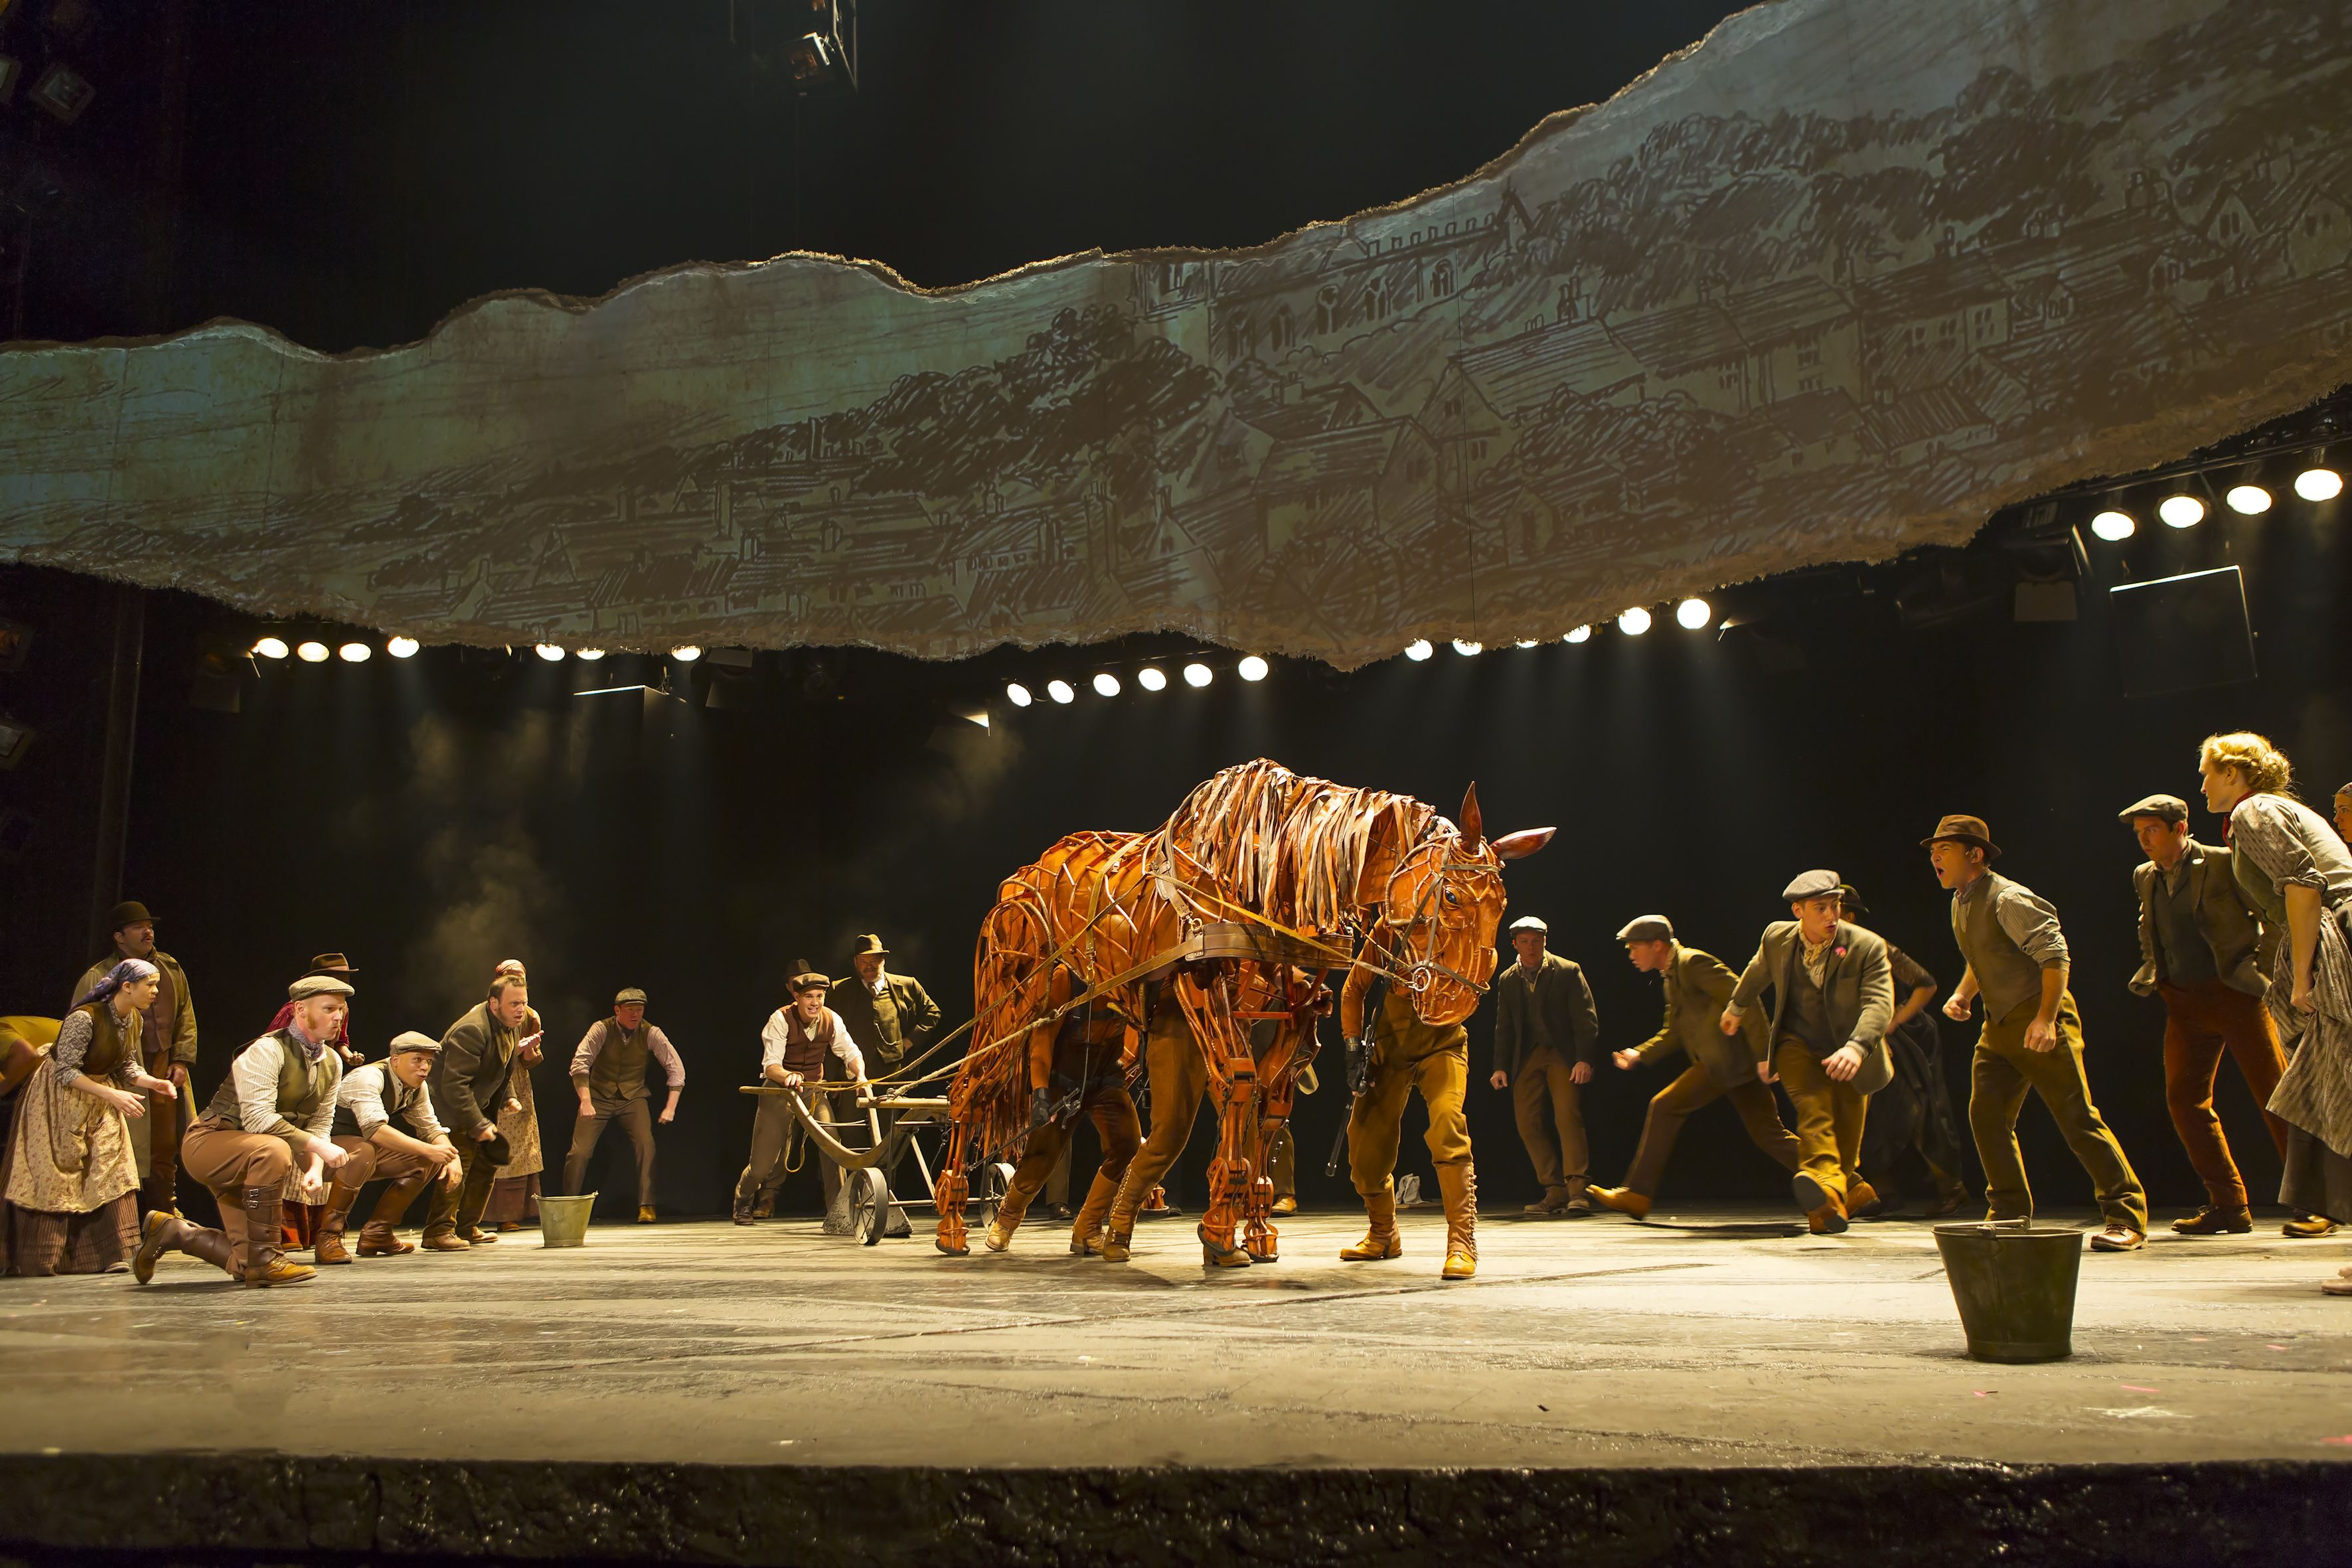 The Orpheum Theatre presents War Horse as part of the Harrahu0027s Tunica Broadway Series March 25 & The Orpheum Theatre presents War Horse as part of the Harrahu0027s ...